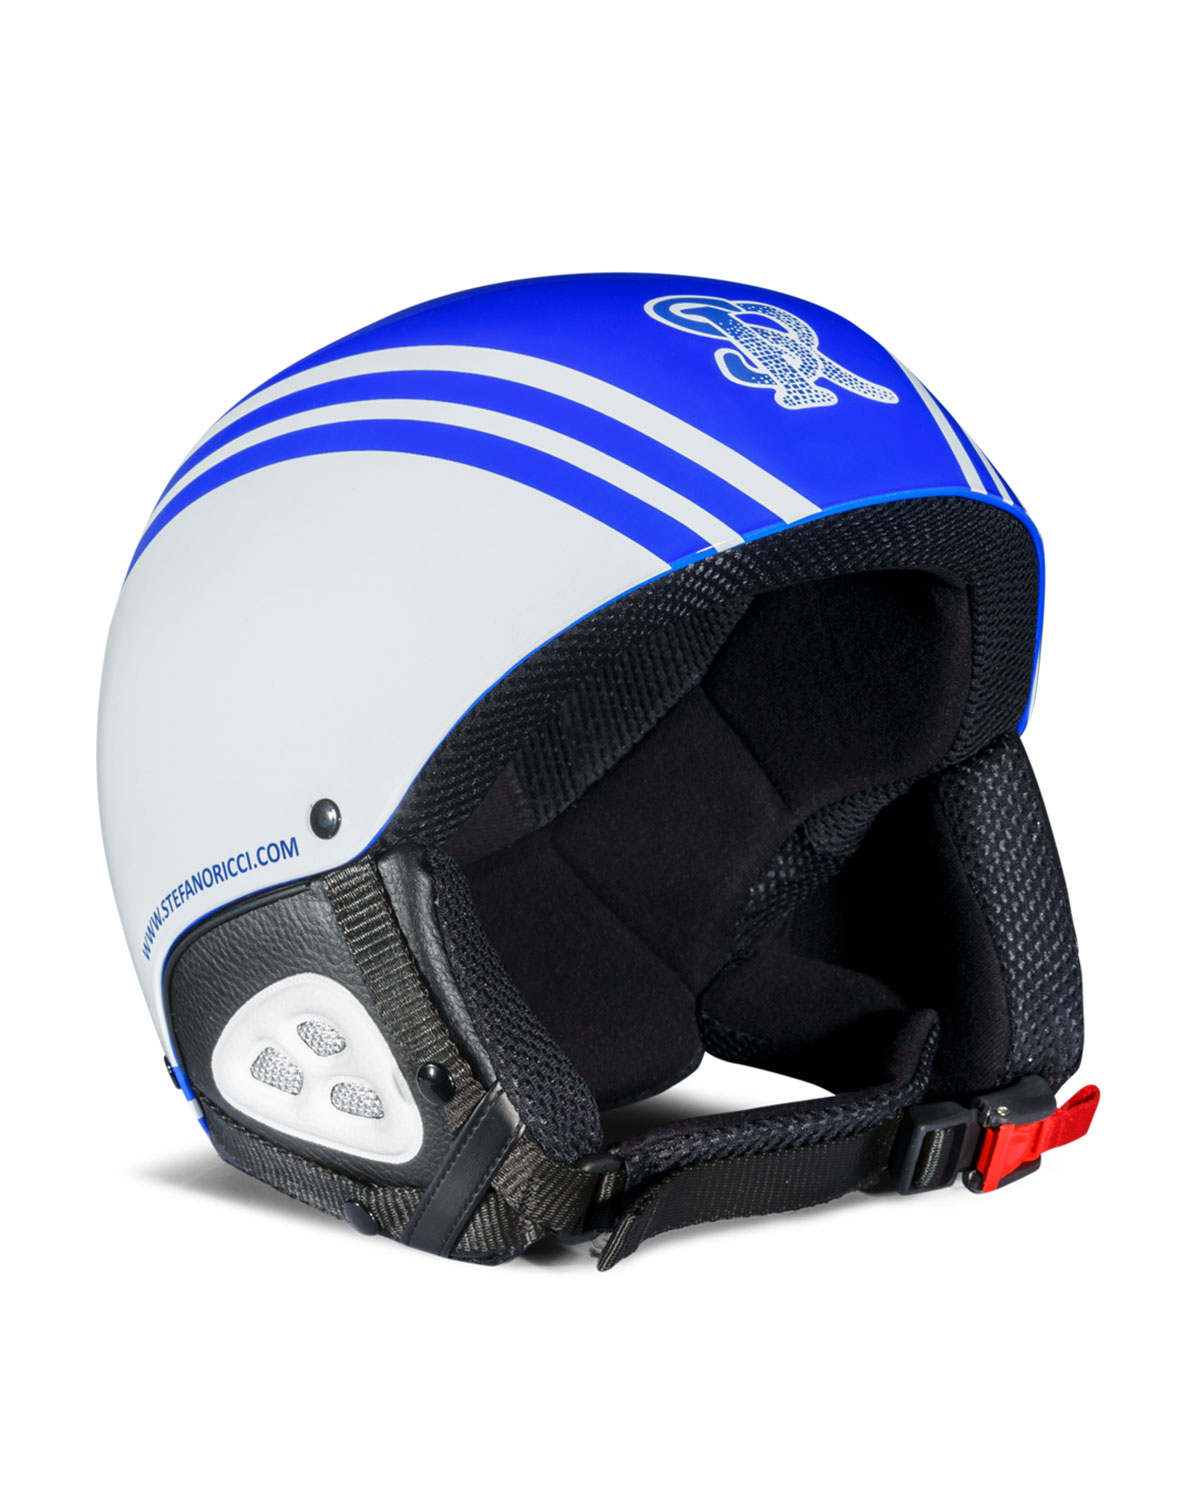 ba31c1d930e70 Stefano Ricci Men s Striped Ski Helmet In Blue